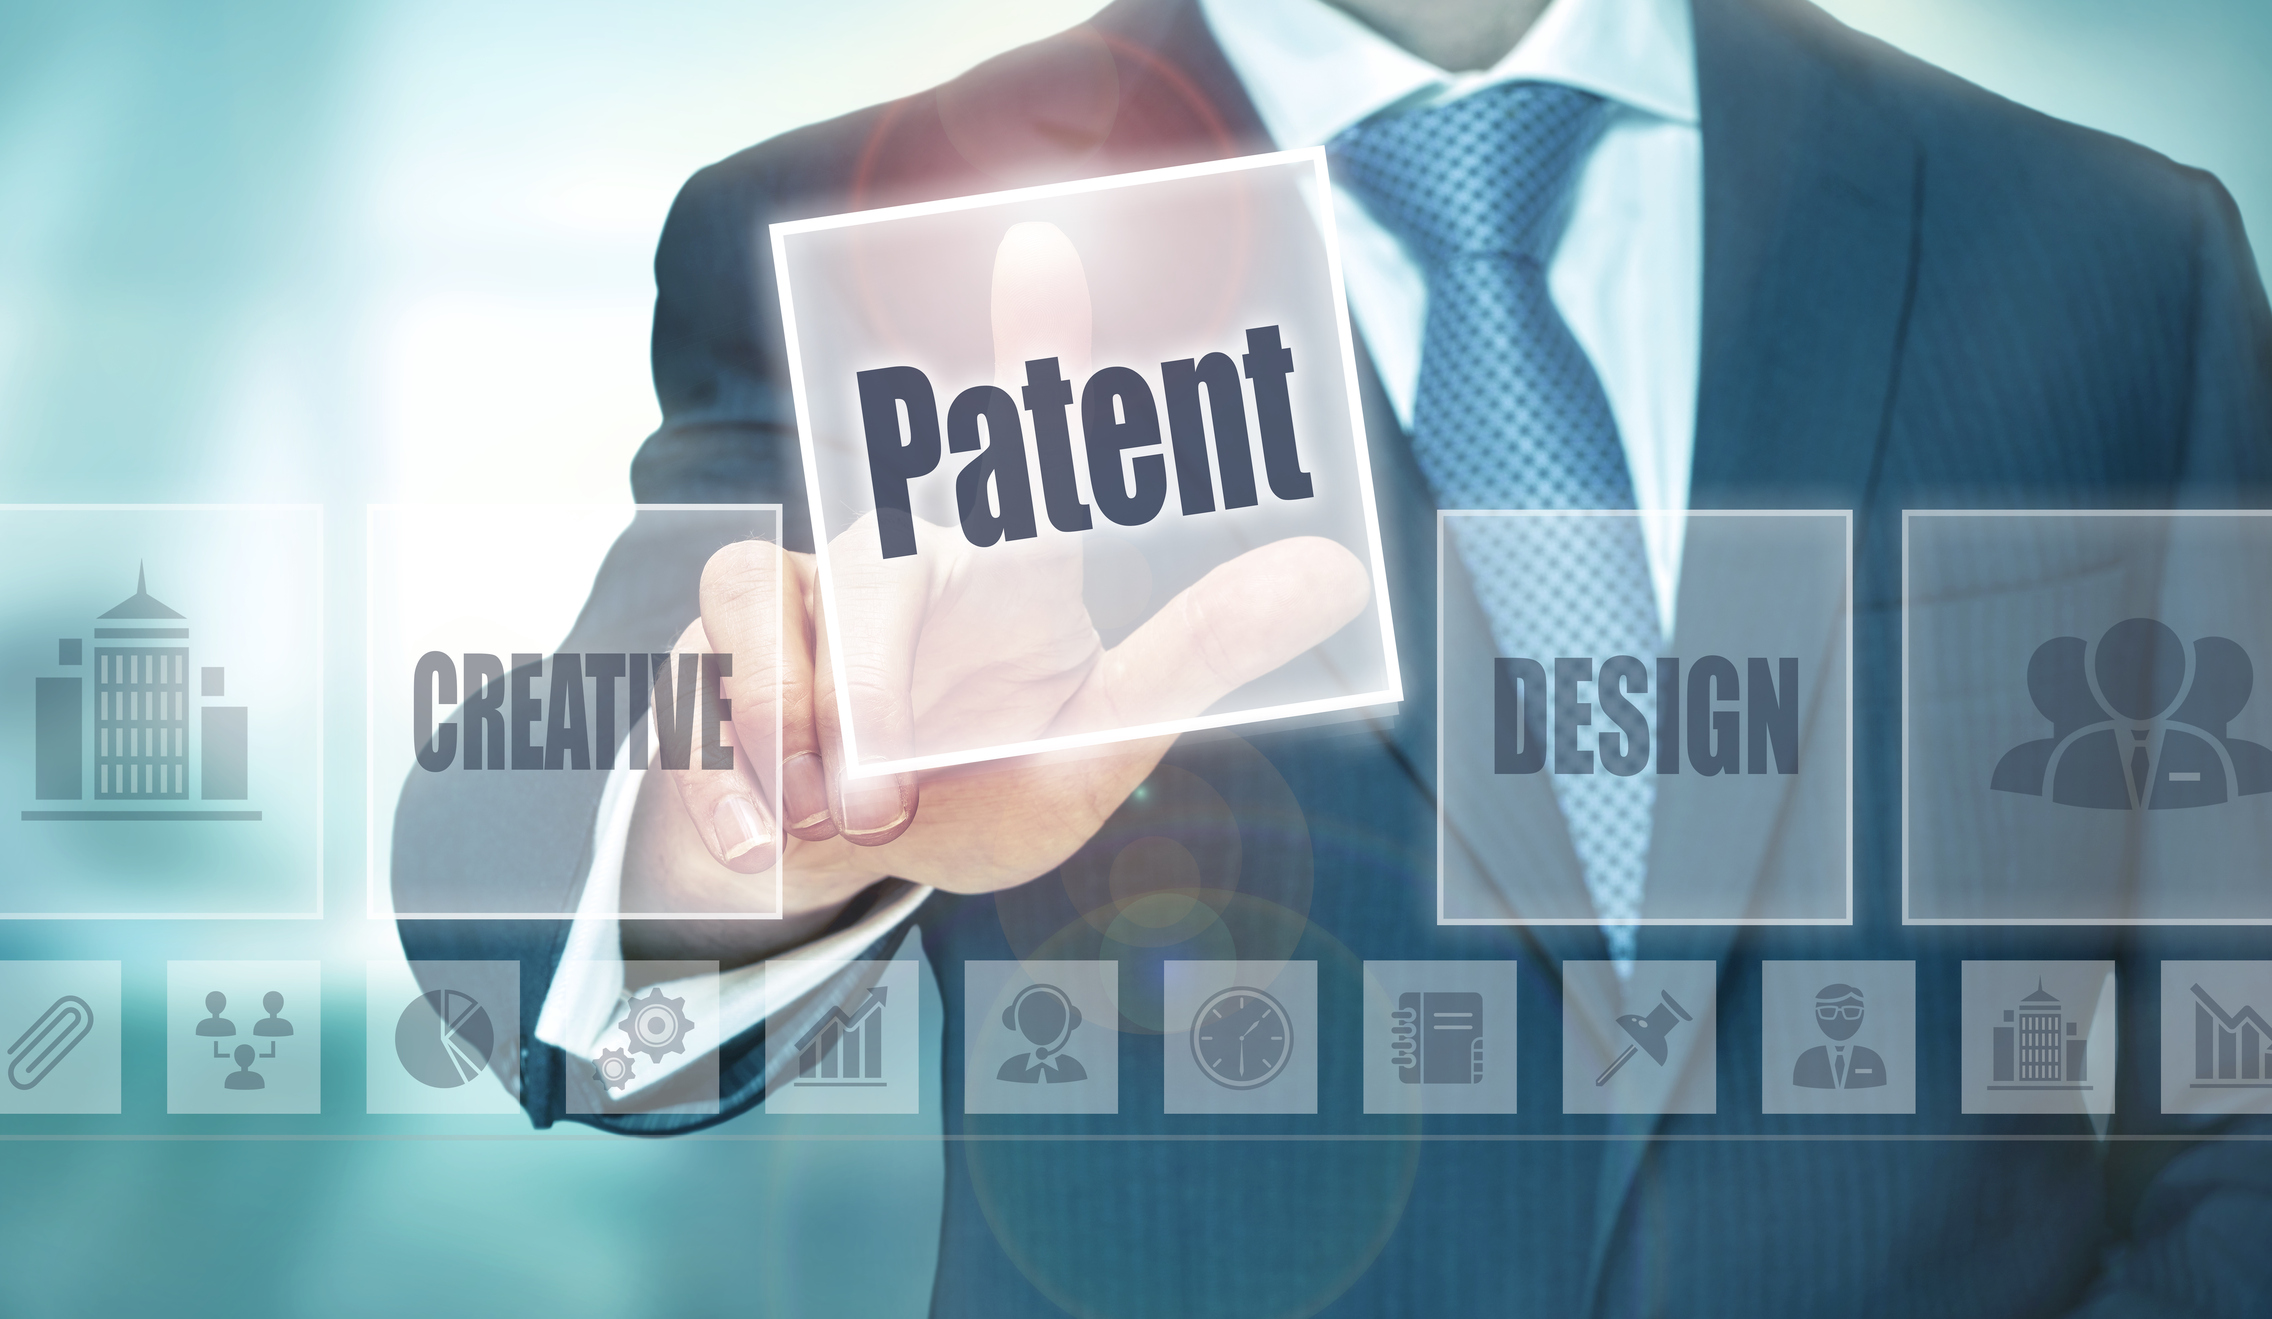 Intellectual property is your business' most important asset. - PROTECTING IT IS OUR COMMITMENT.